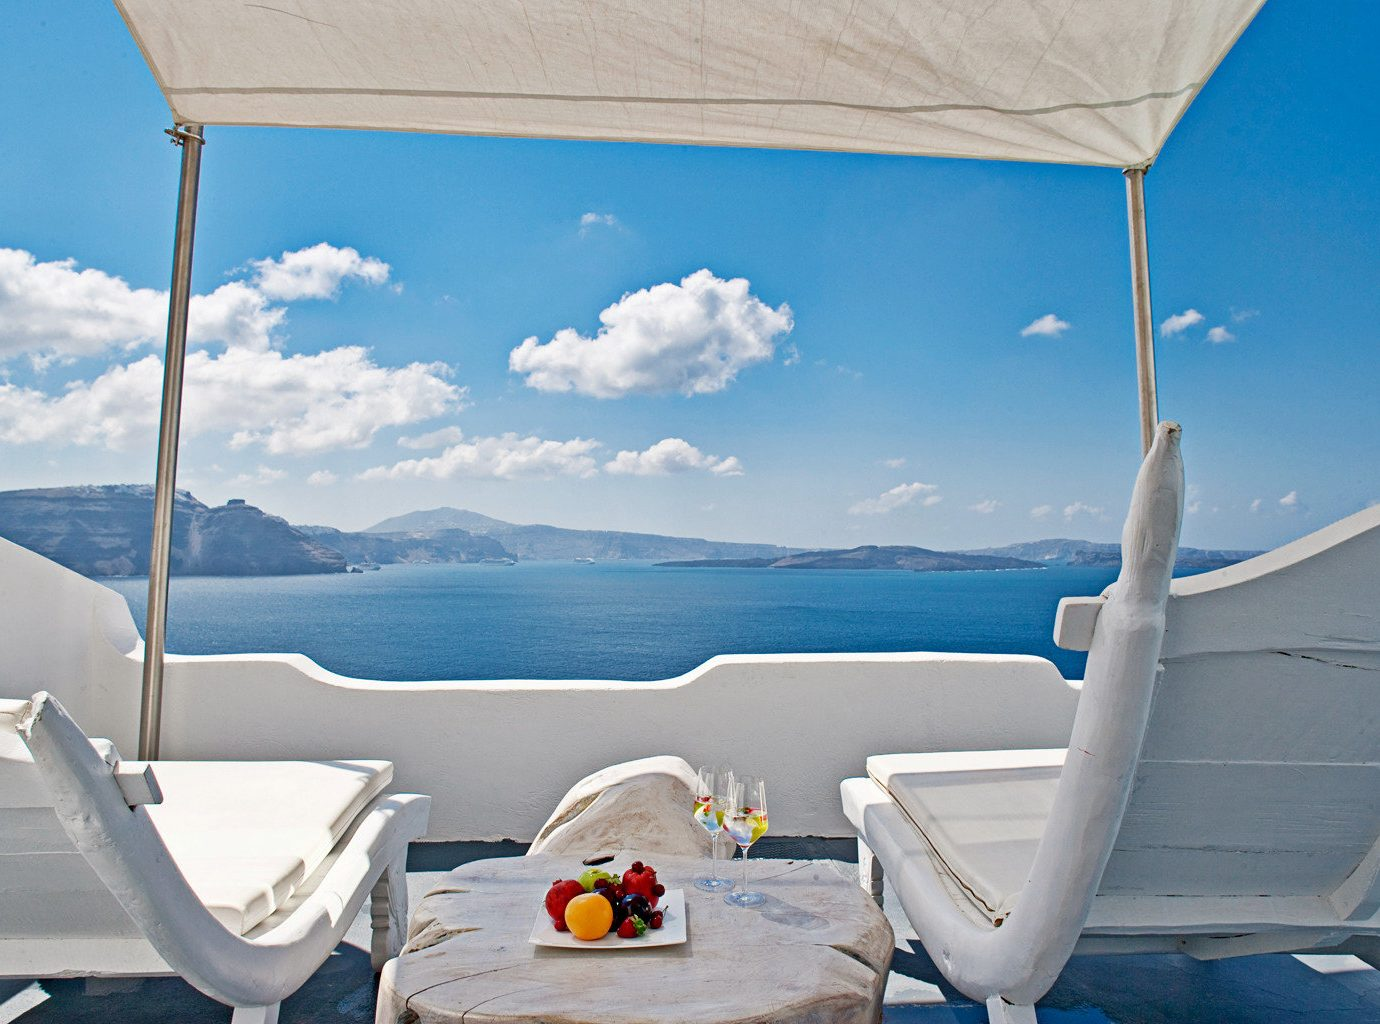 Balcony Bedroom Classic Elegant Hotels Island Luxury Romantic Scenic views Trip Ideas Waterfront sky blue outdoor room vacation Sea wind day